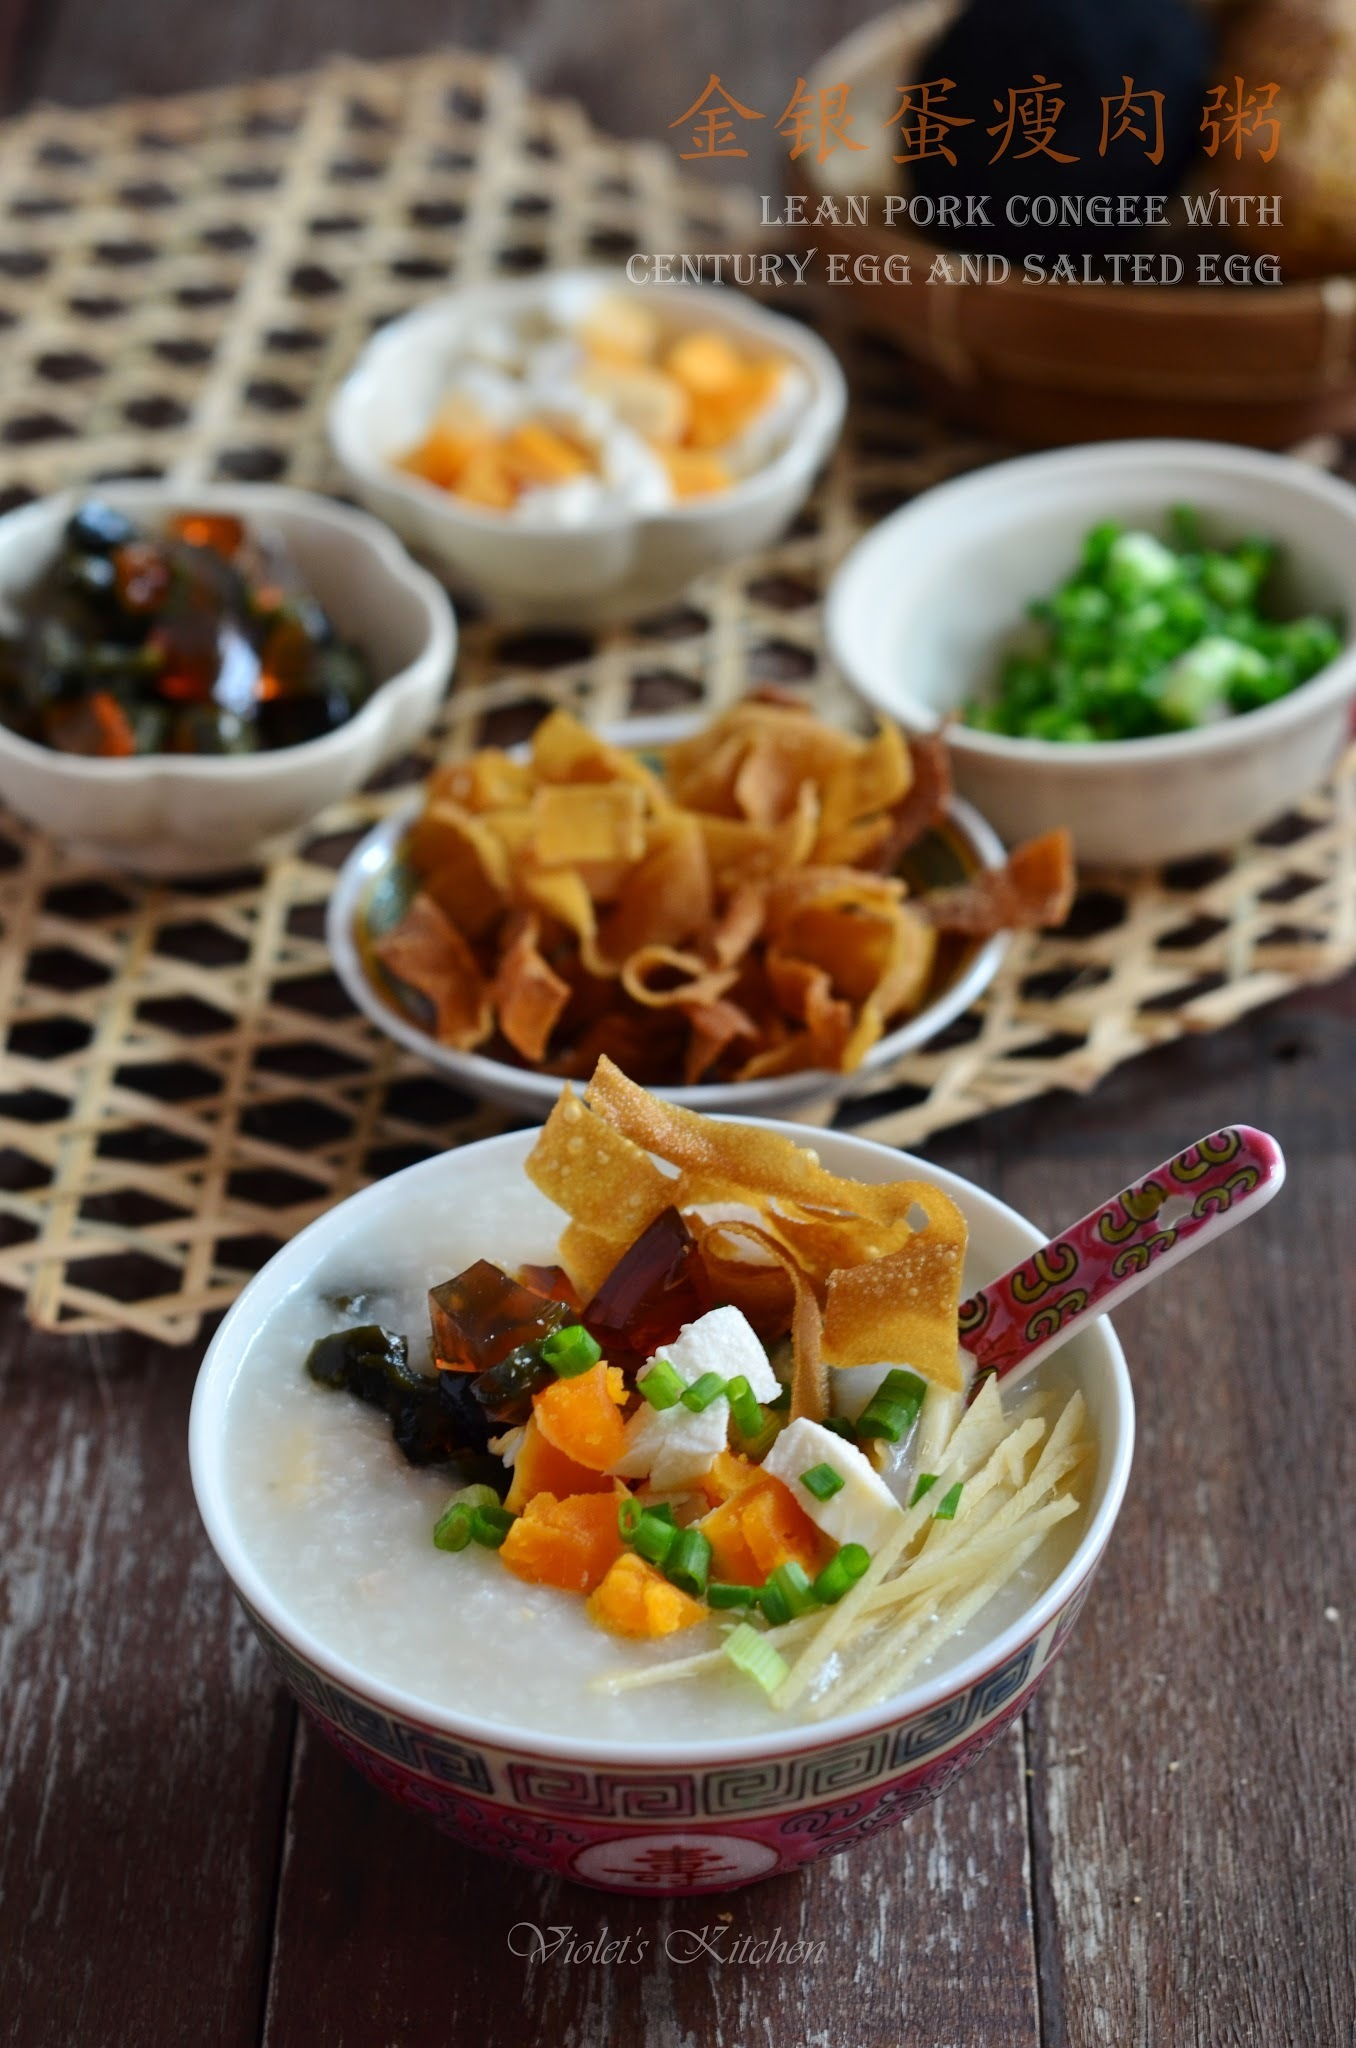 金银蛋瘦肉粥 Lean Pork Congee with Century Egg and Salted Egg